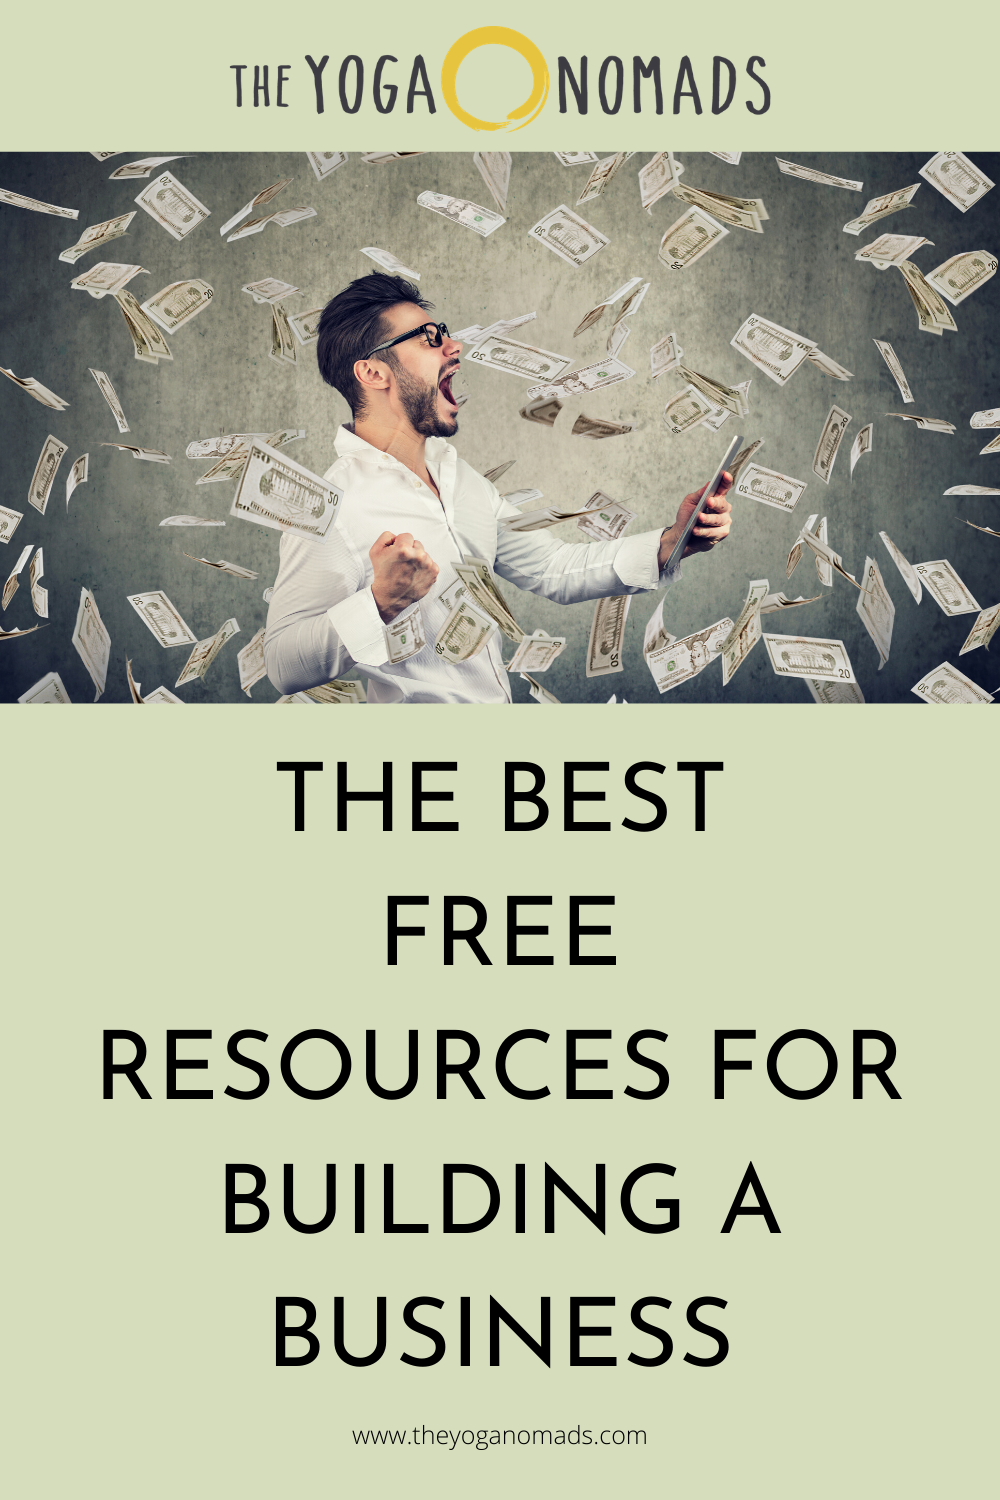 The Best Free Resources for Building a Business